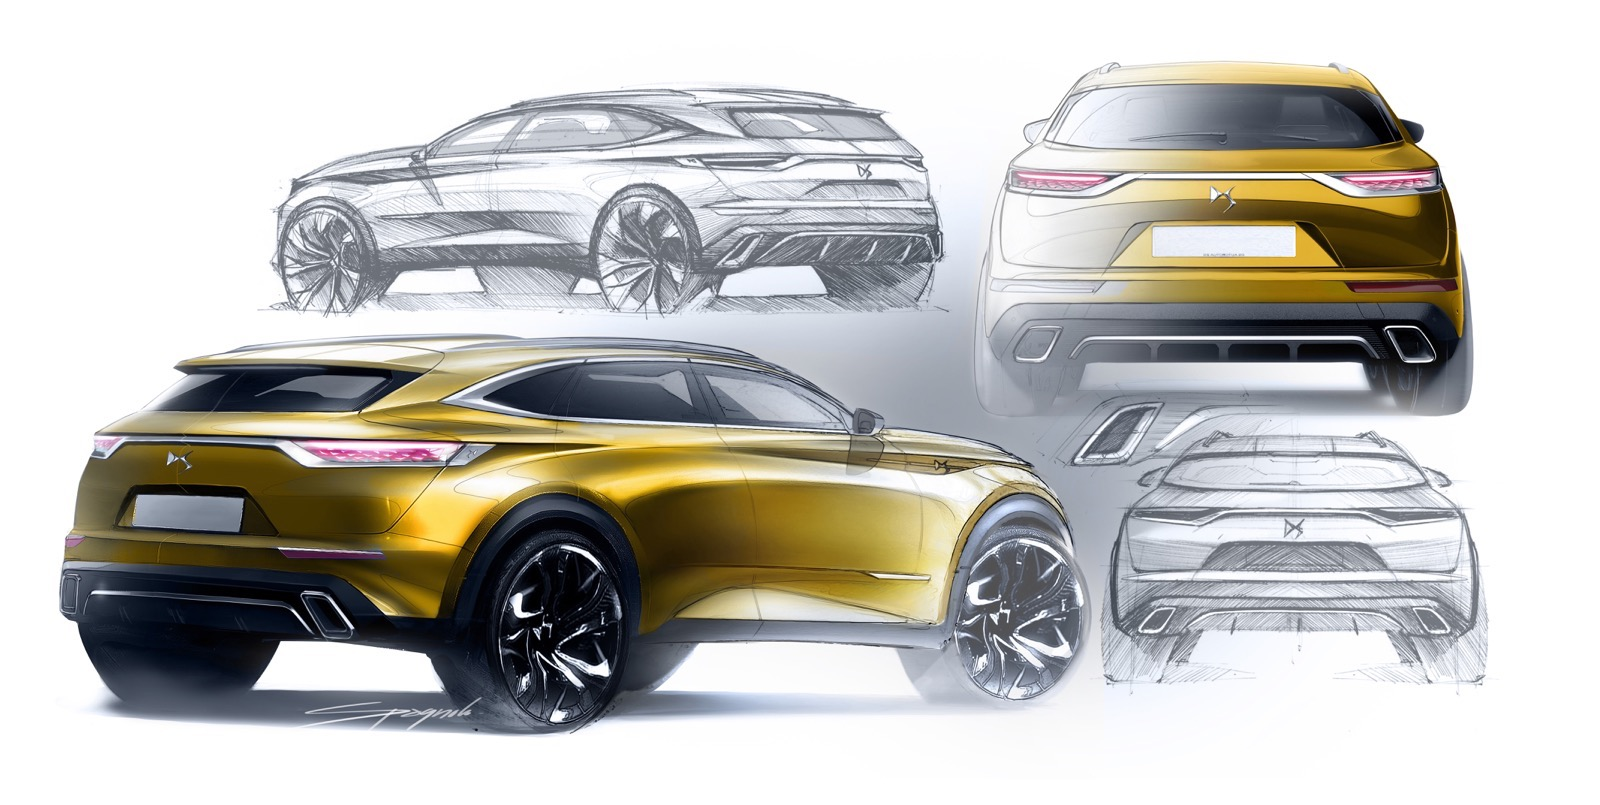 DS_7_Crossback_03